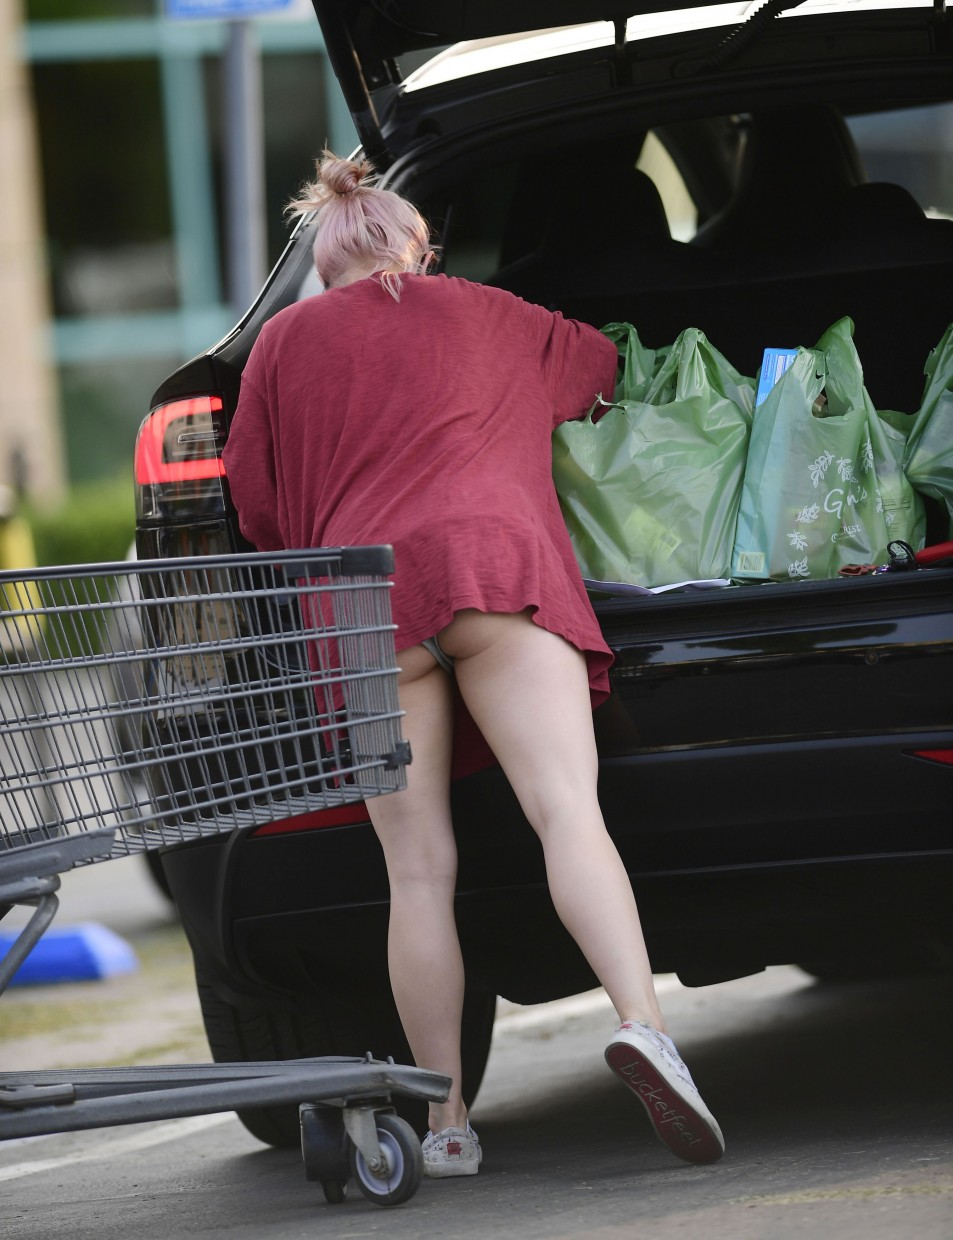 Ariel-Winter-Upskirt-while-grocery-shopping-in-Los-Angeles-992020-1.jpg